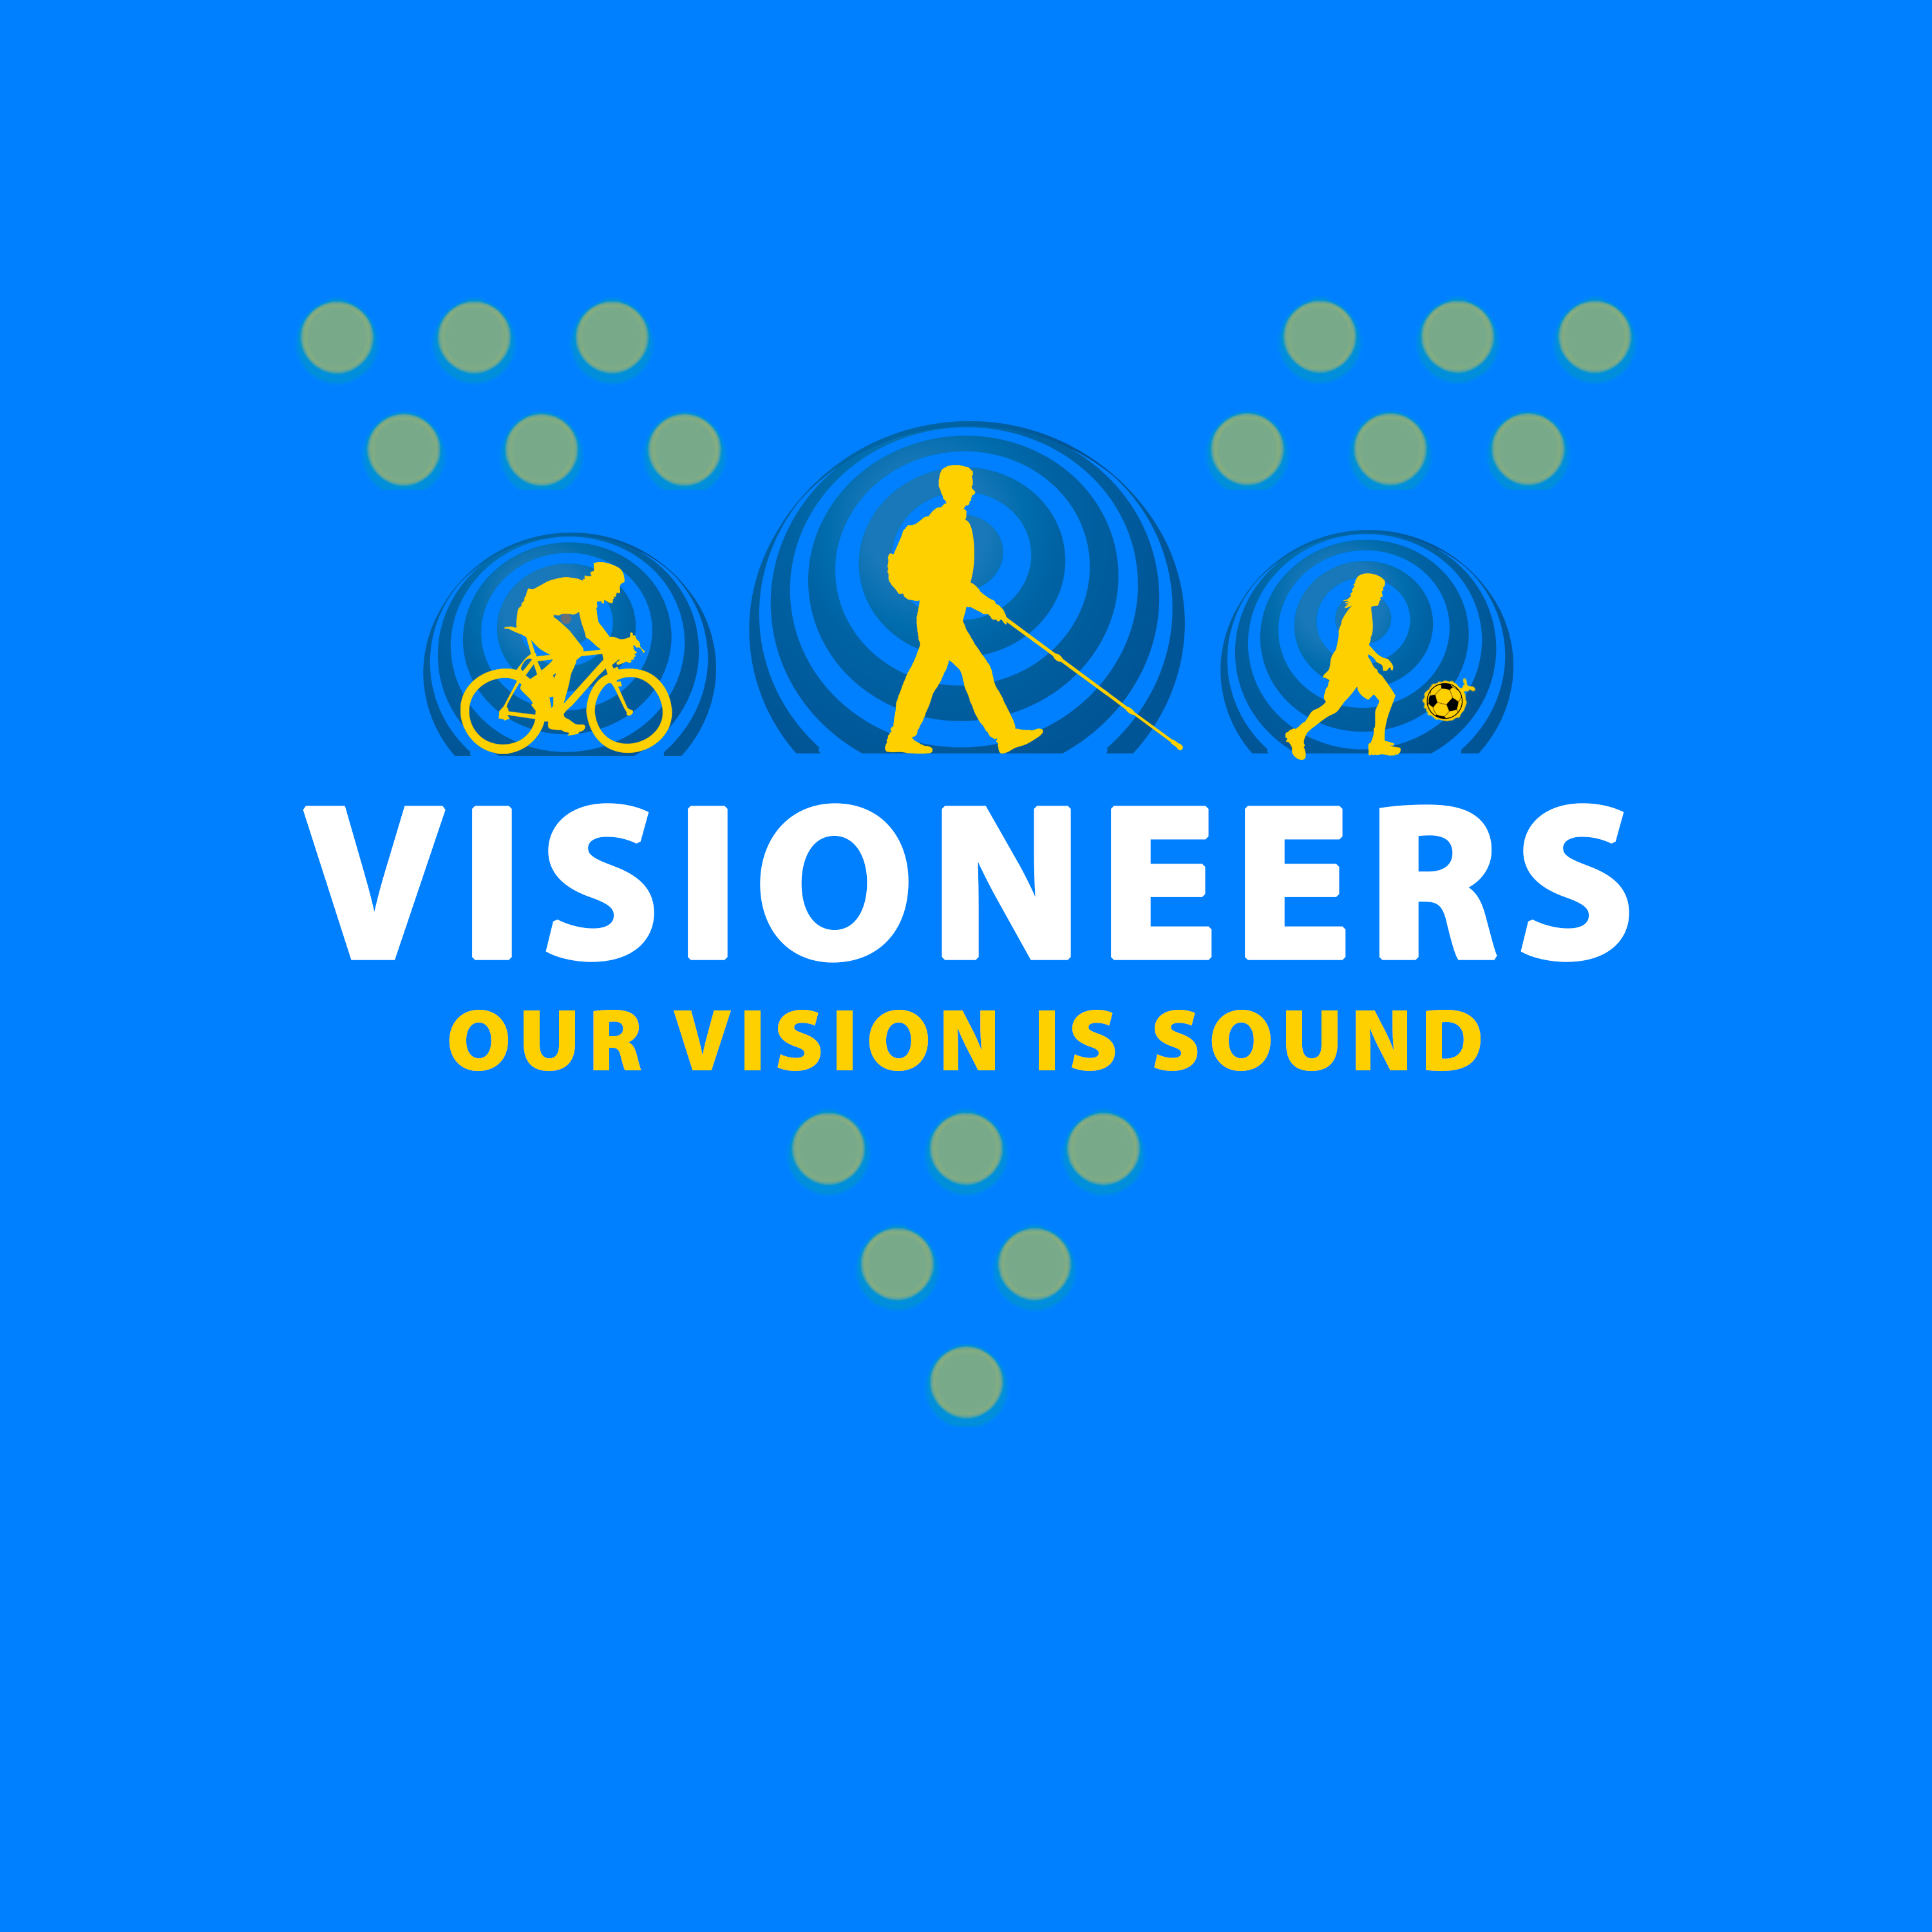 Visioneers 24. Full three icon configuration in yellow with muted yellow V dots against blue background.